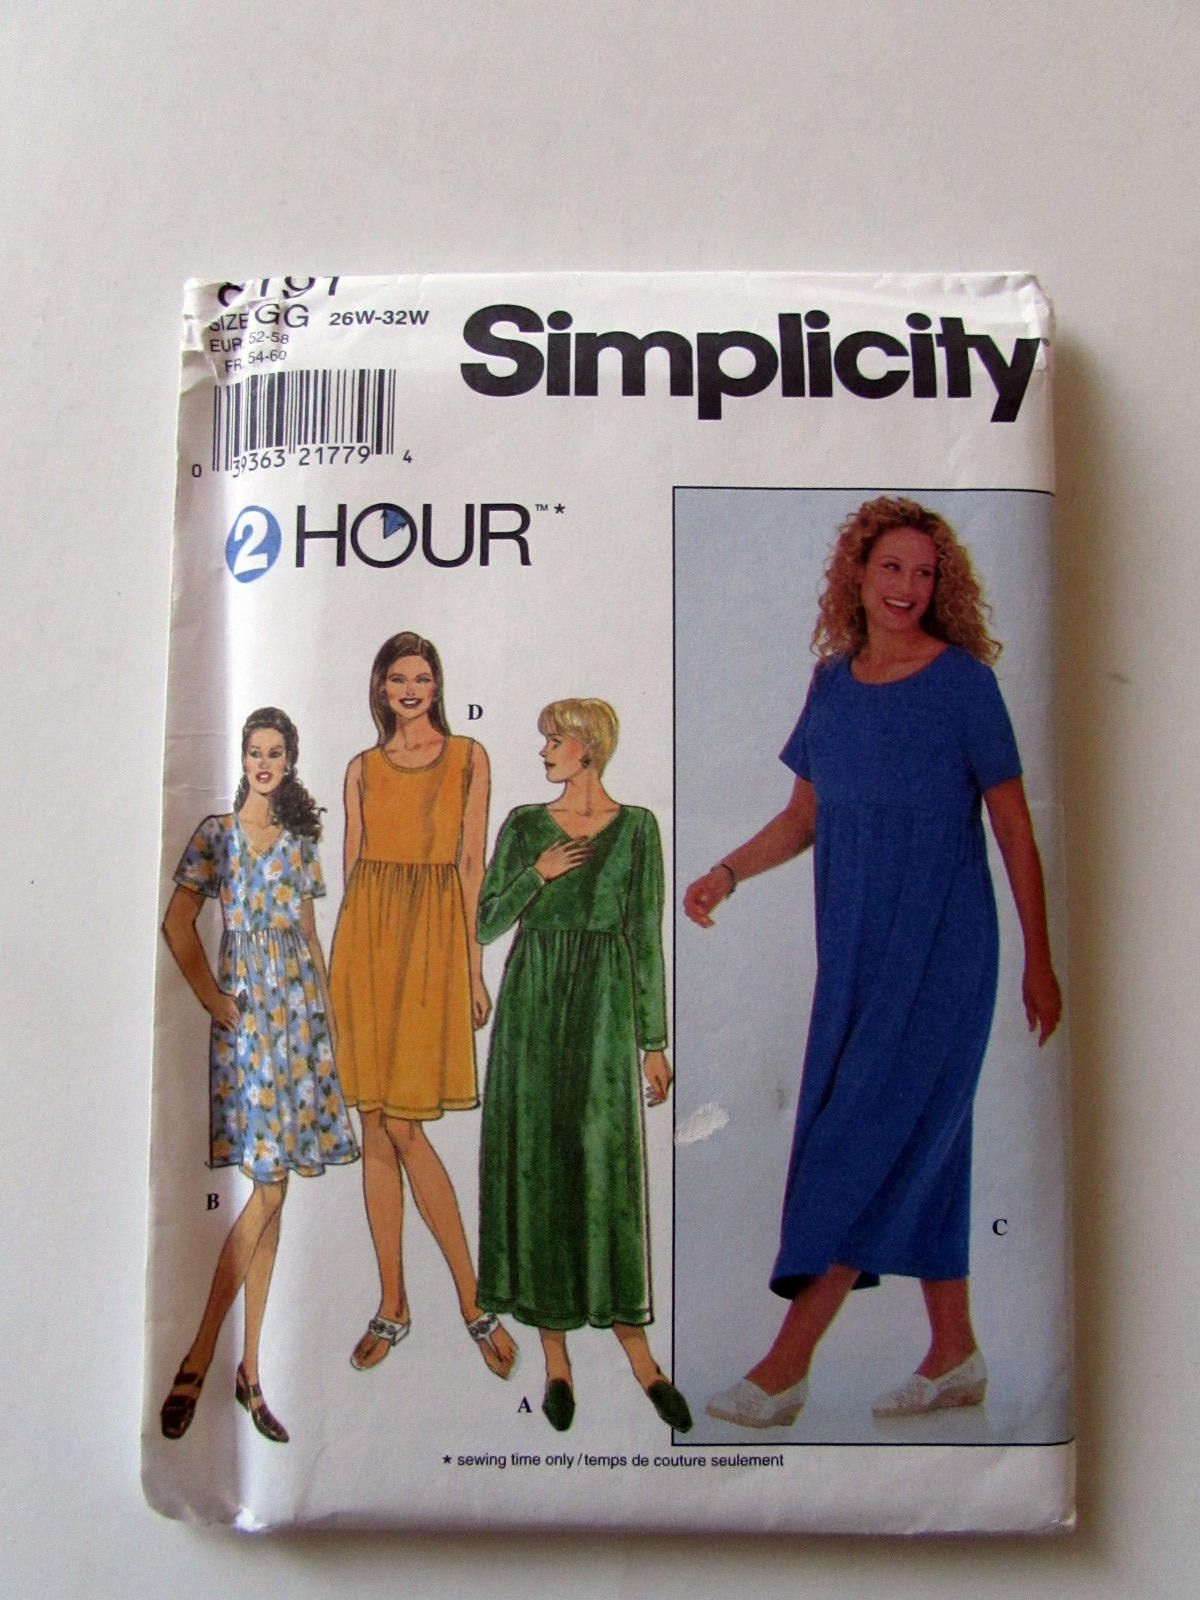 Easy Simplicity Plus Size Woman\'s Pullover Knit Dress Pattern 8191 ...